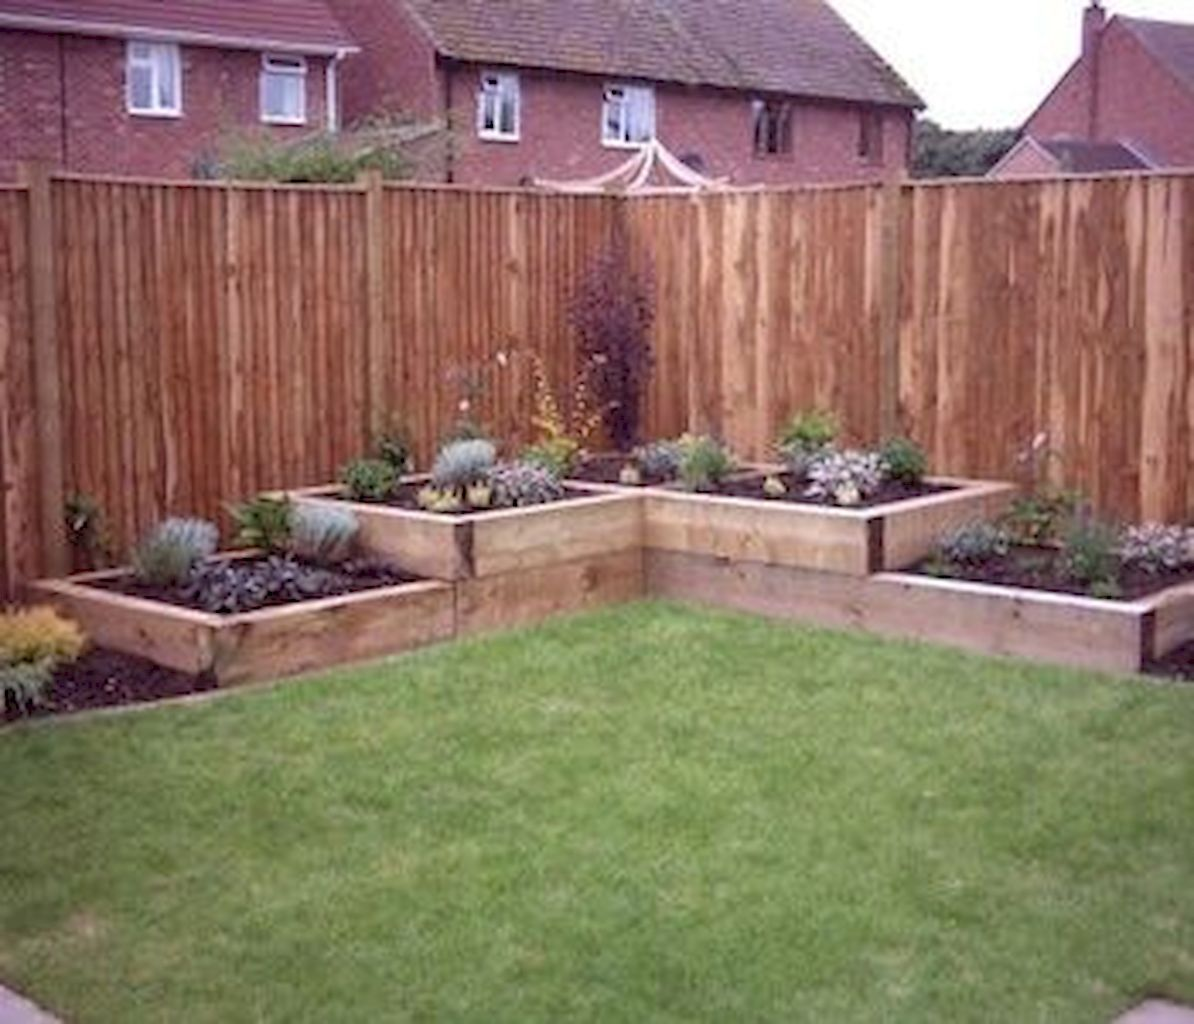 40 beautiful backyard landscaping ideas on a budget for Simple garden designs on a budget